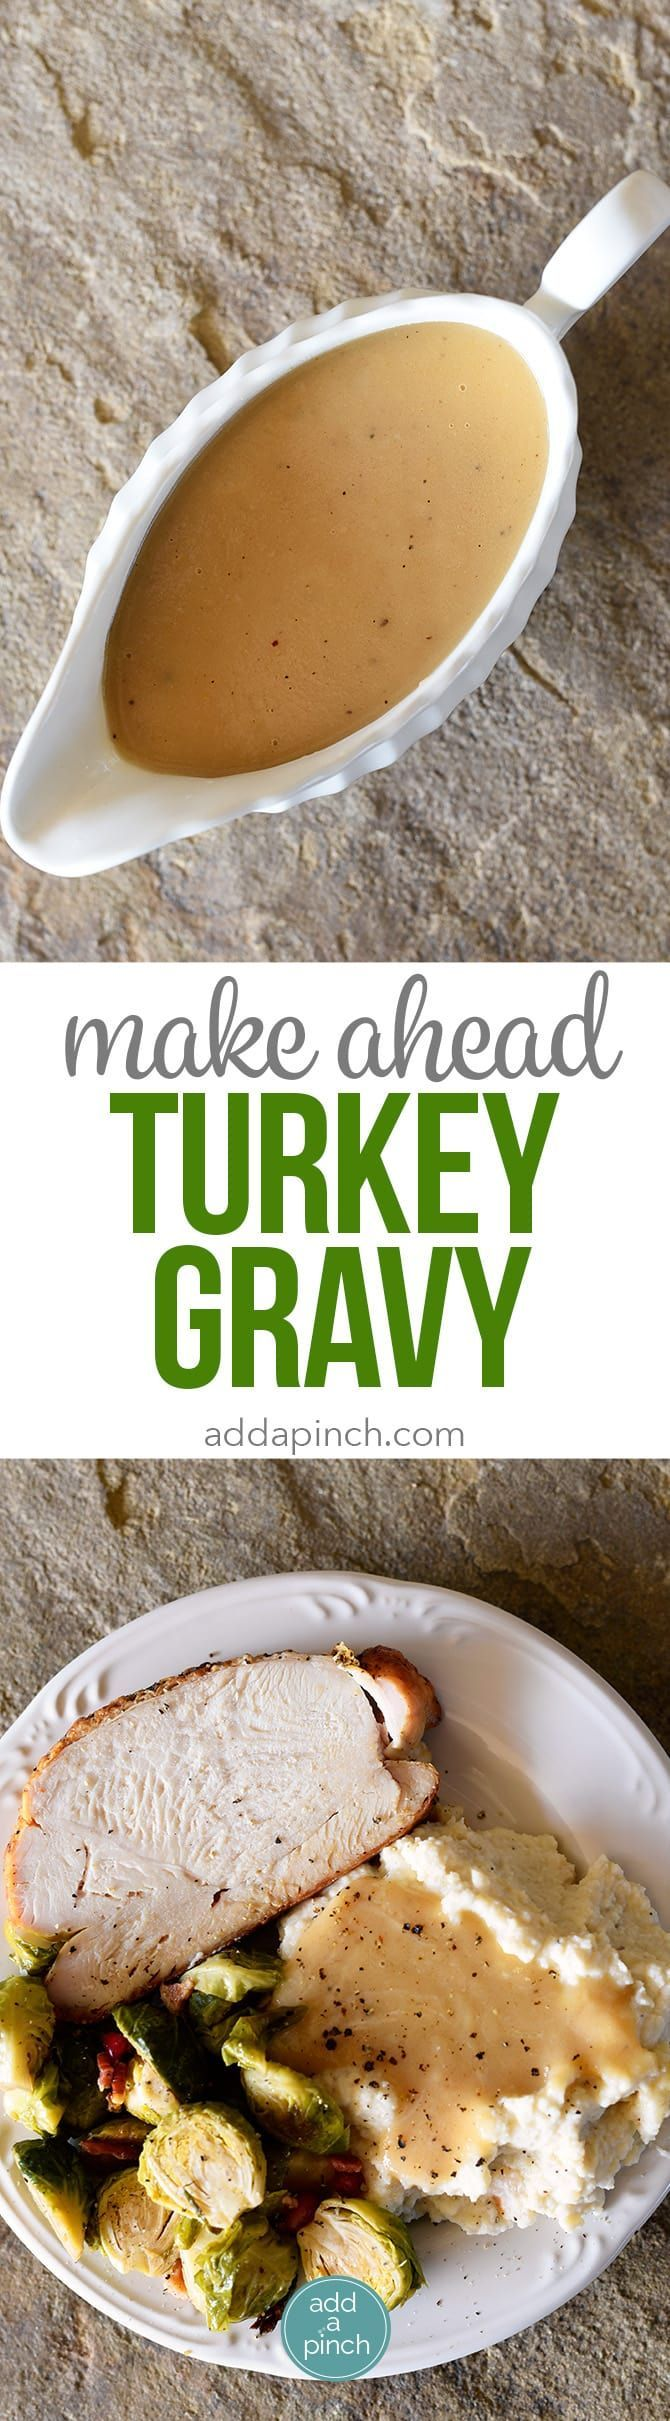 Make-Ahead Turkey Gravy Recipe - This easy turkey gravy recipe is essential to your holiday menu! Simple enough to make on the holiday, but perfect as a make ahead gravy recipe! // addapinch.com